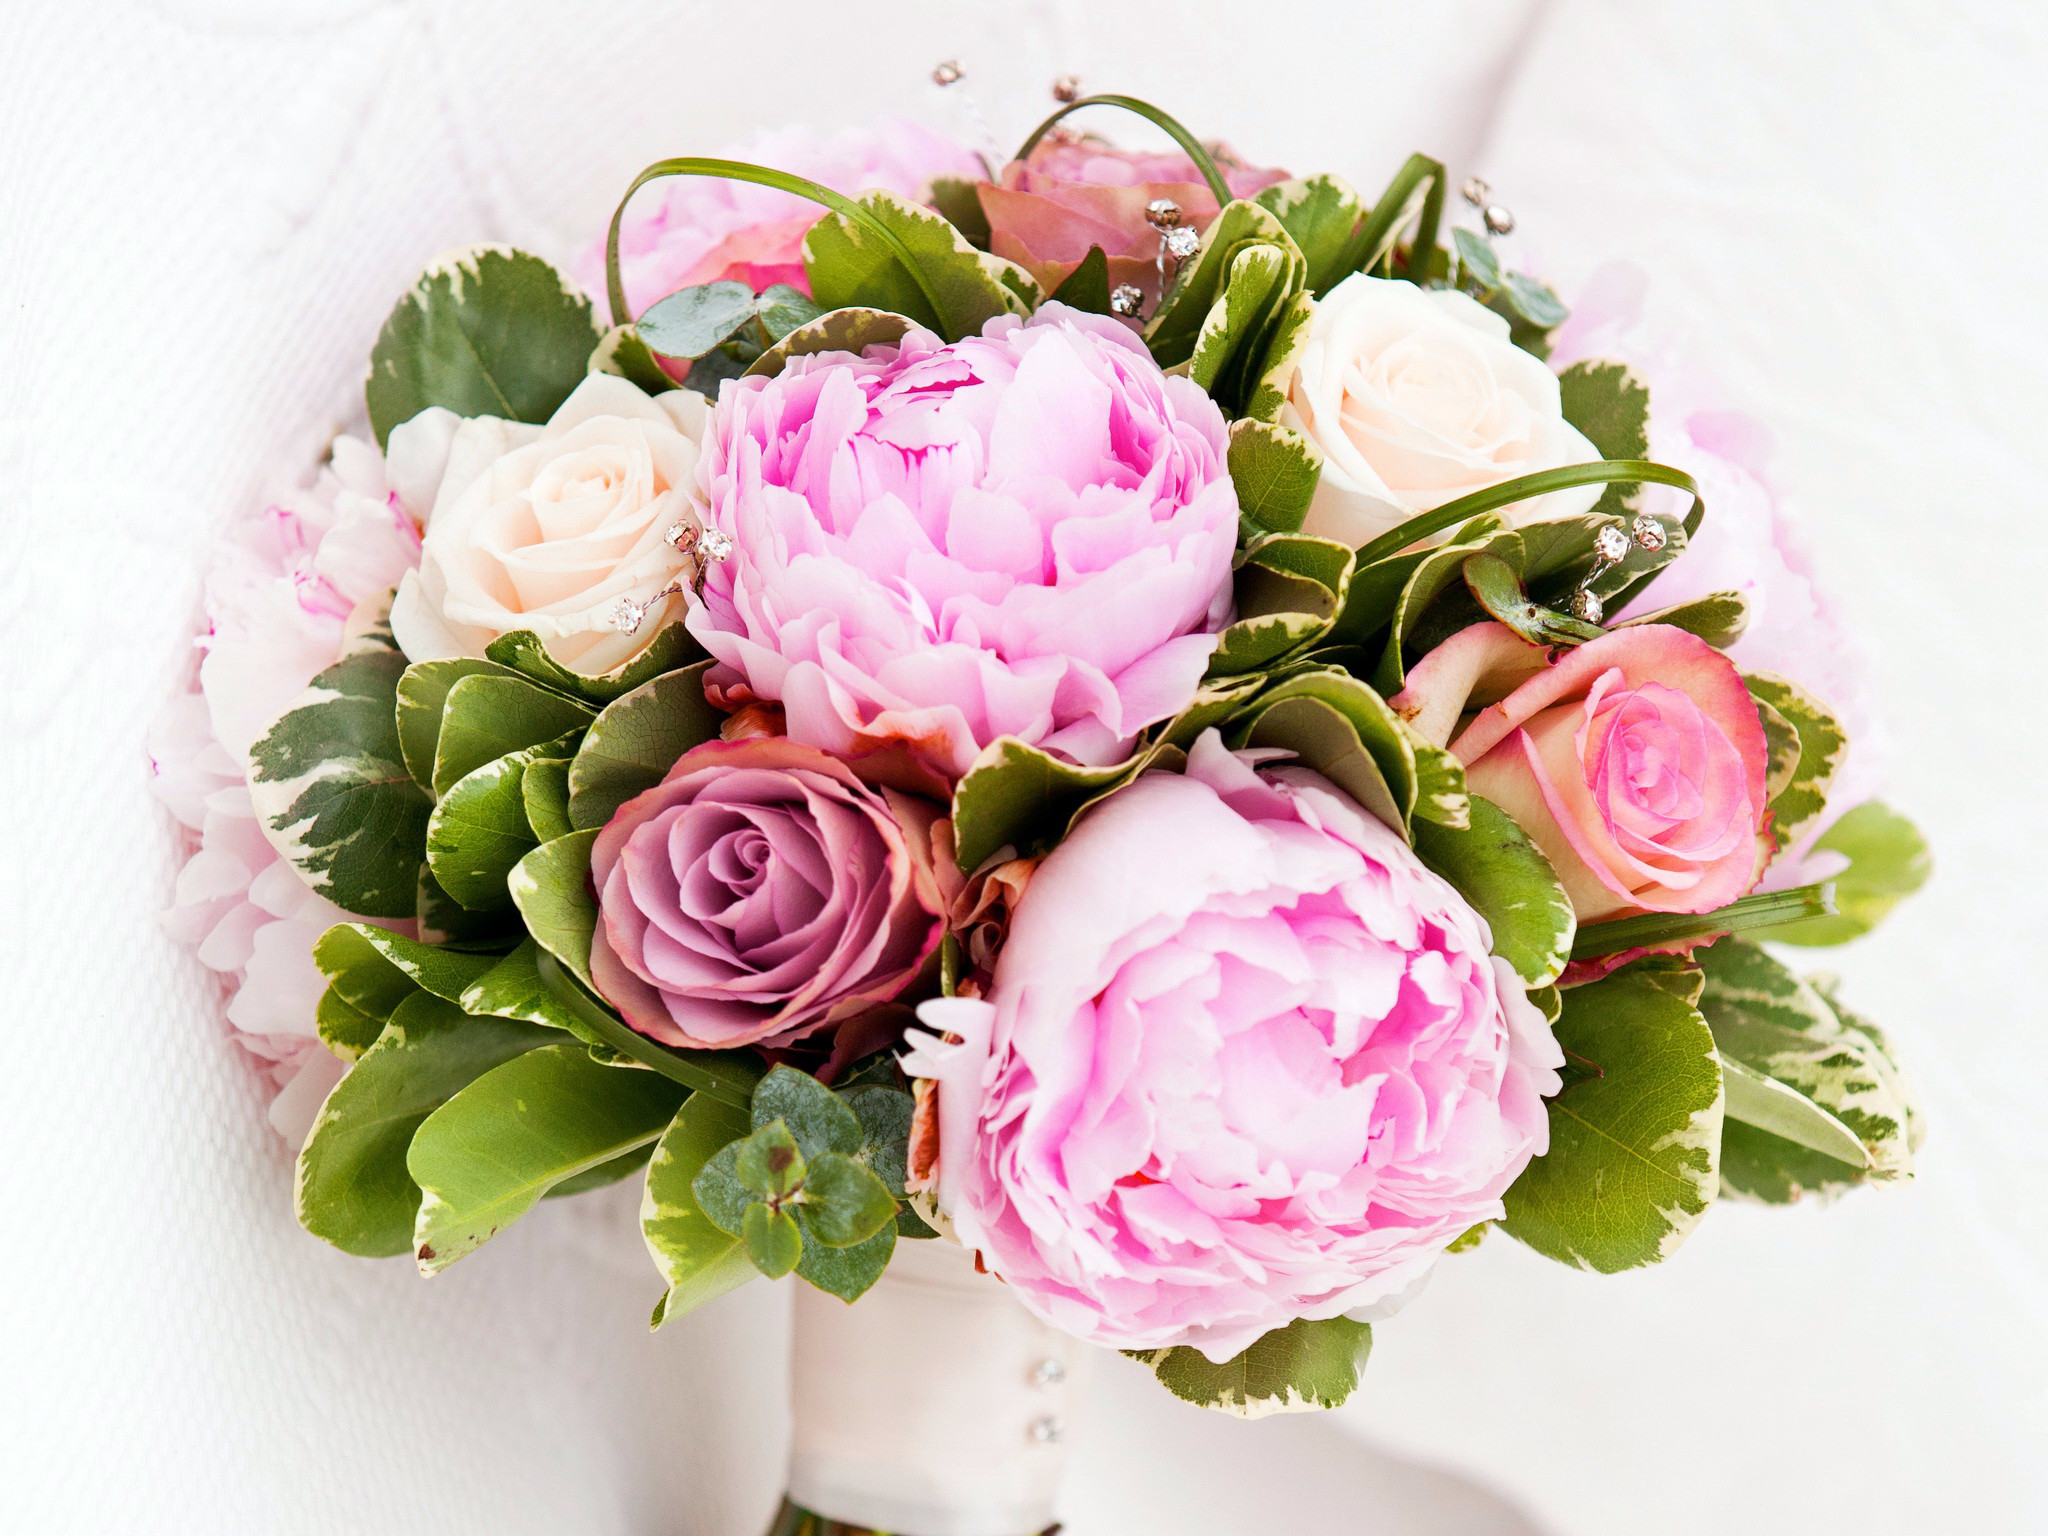 Bouquets Peonies Roses Flowers Wallpapers and photos